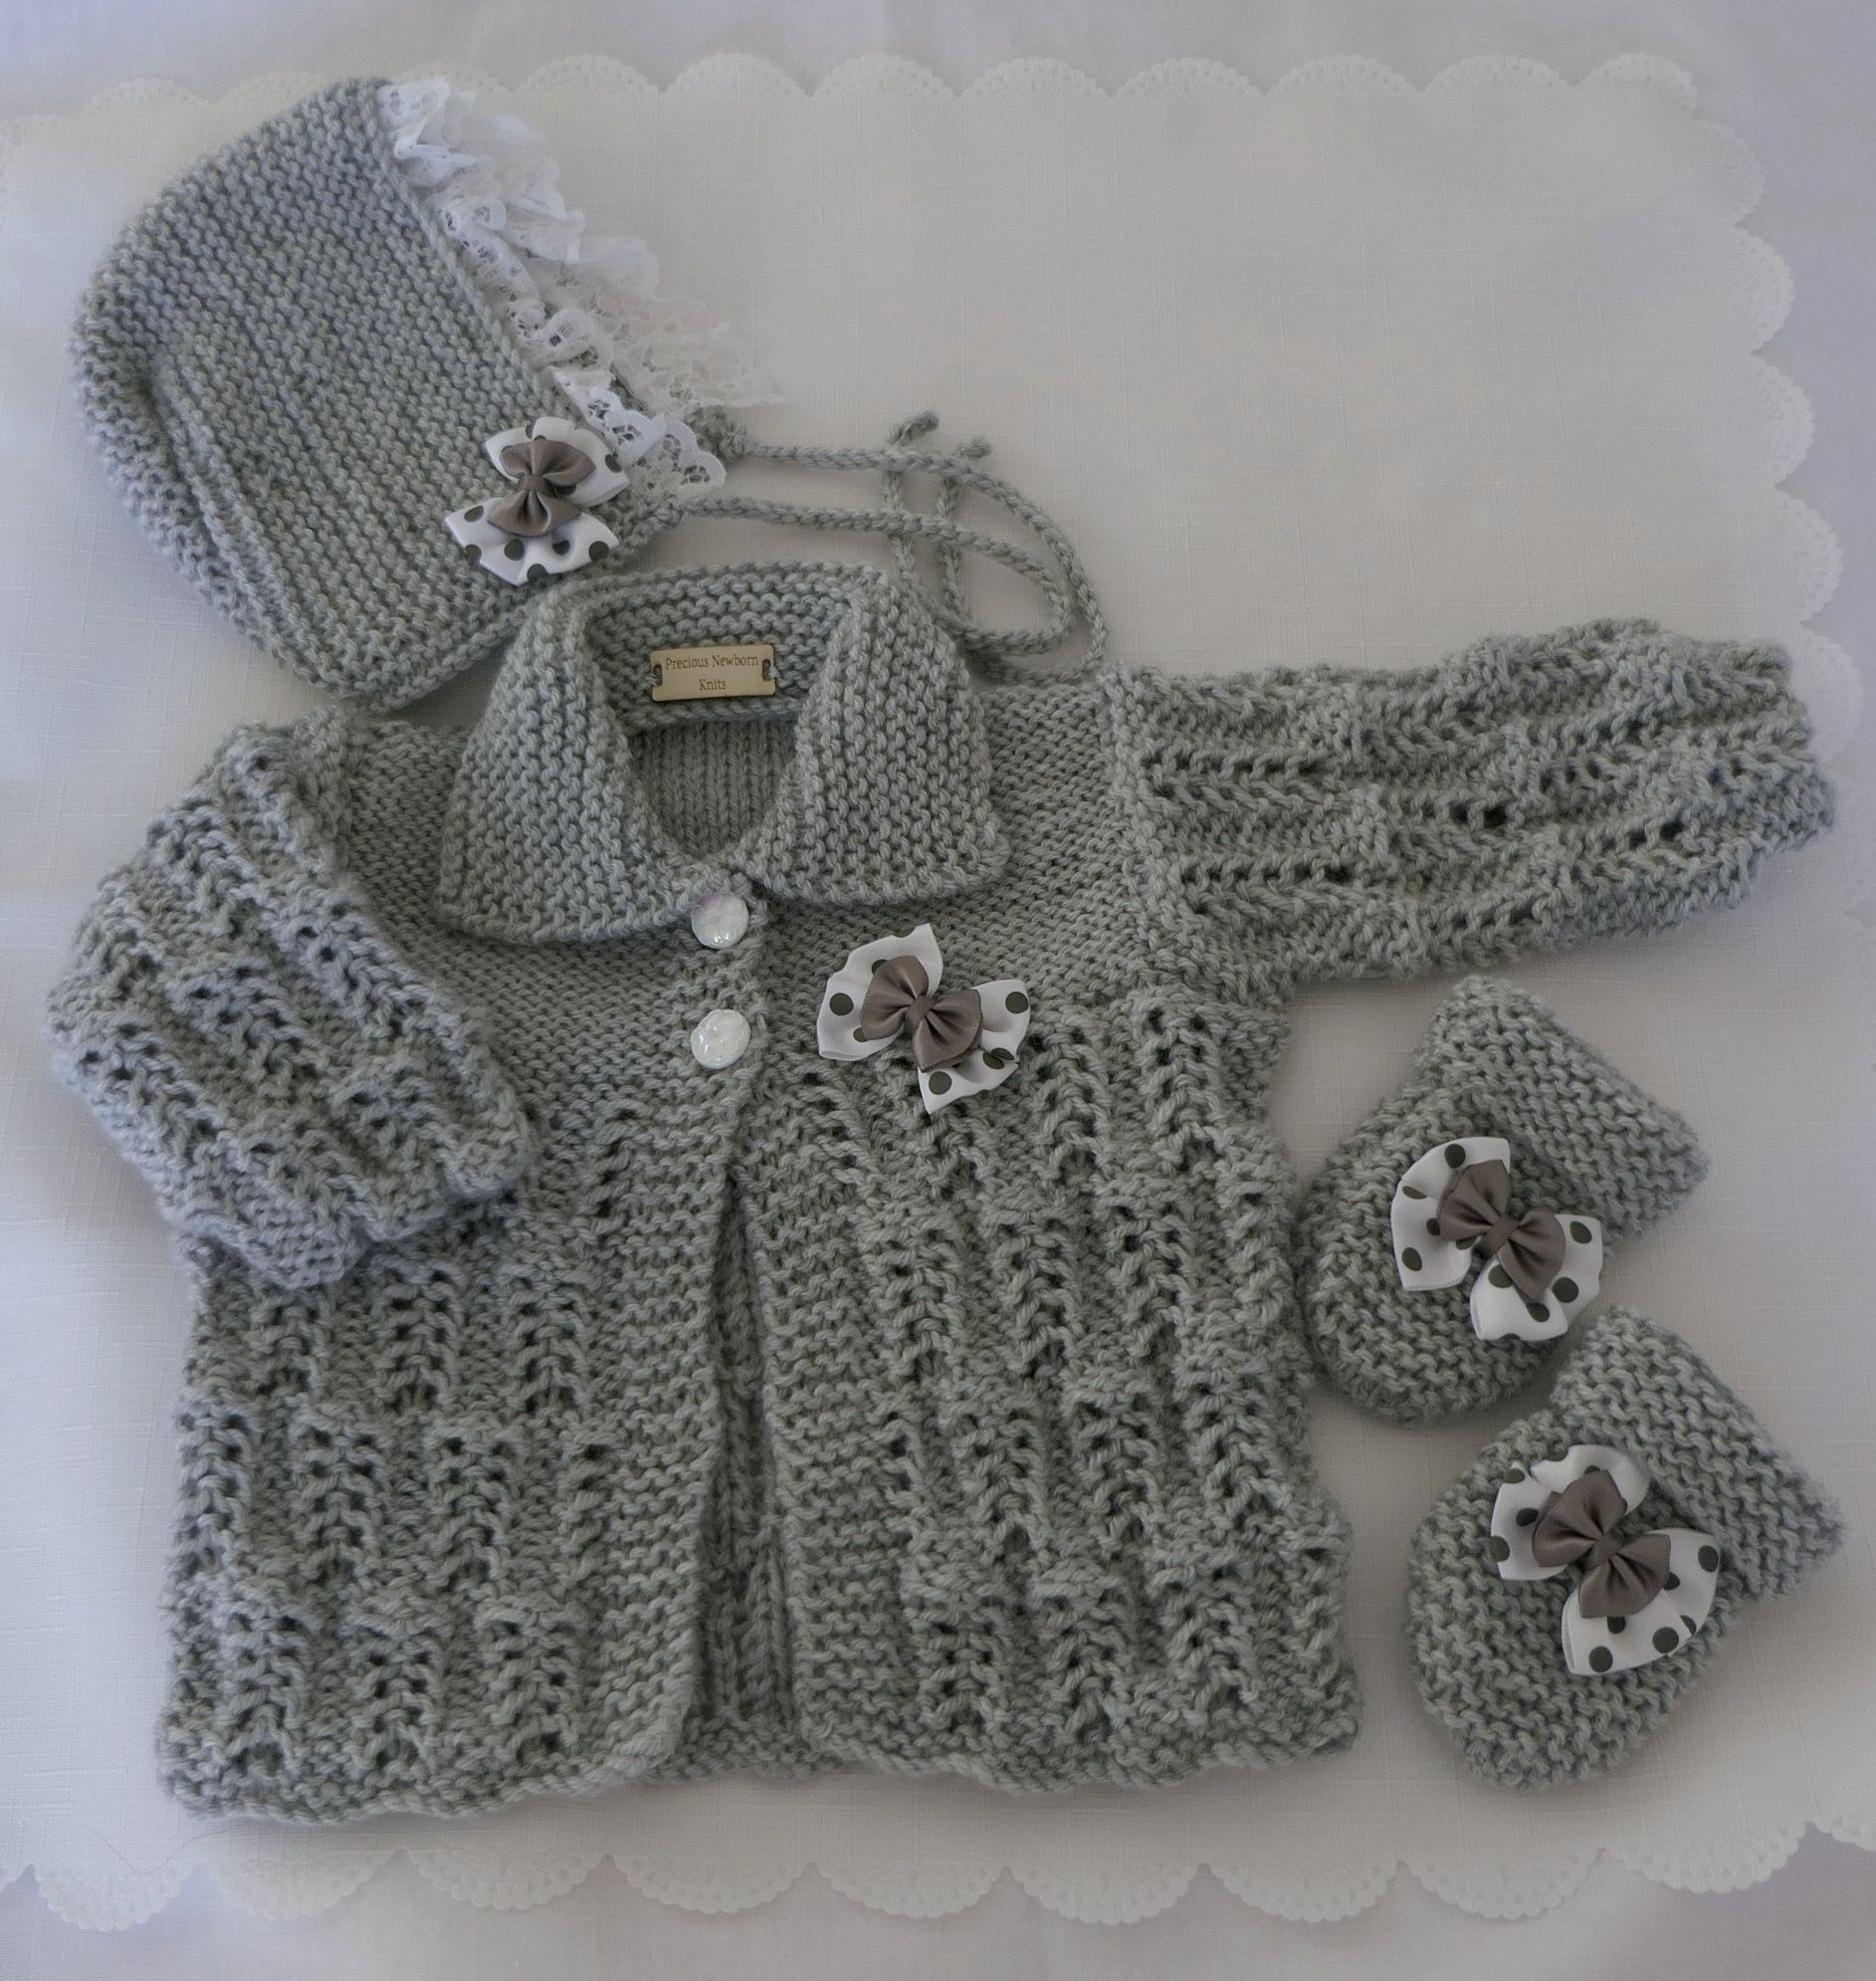 A BEAUTIFUL HAND KNITTED SET OF HAT,MITTS AND CARDIGAN FOR 0-3 MONTHS